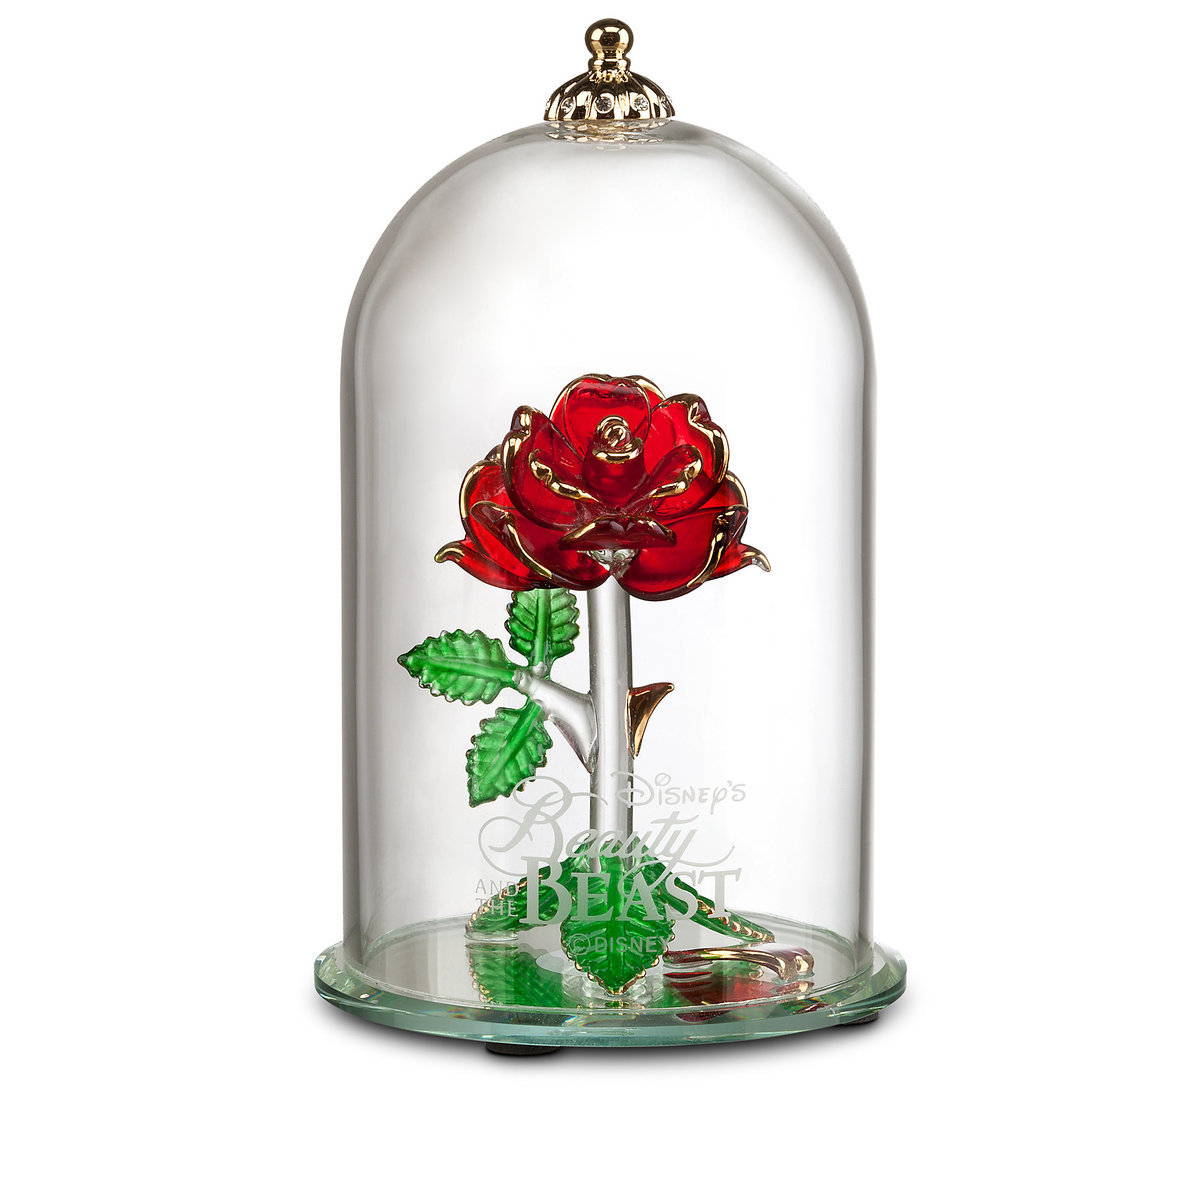 Beauty and the beast enchanted rose glass sculpture by arribas thumbnail image of beauty and the beast enchanted rose glass sculpture by arribas large izmirmasajfo Choice Image